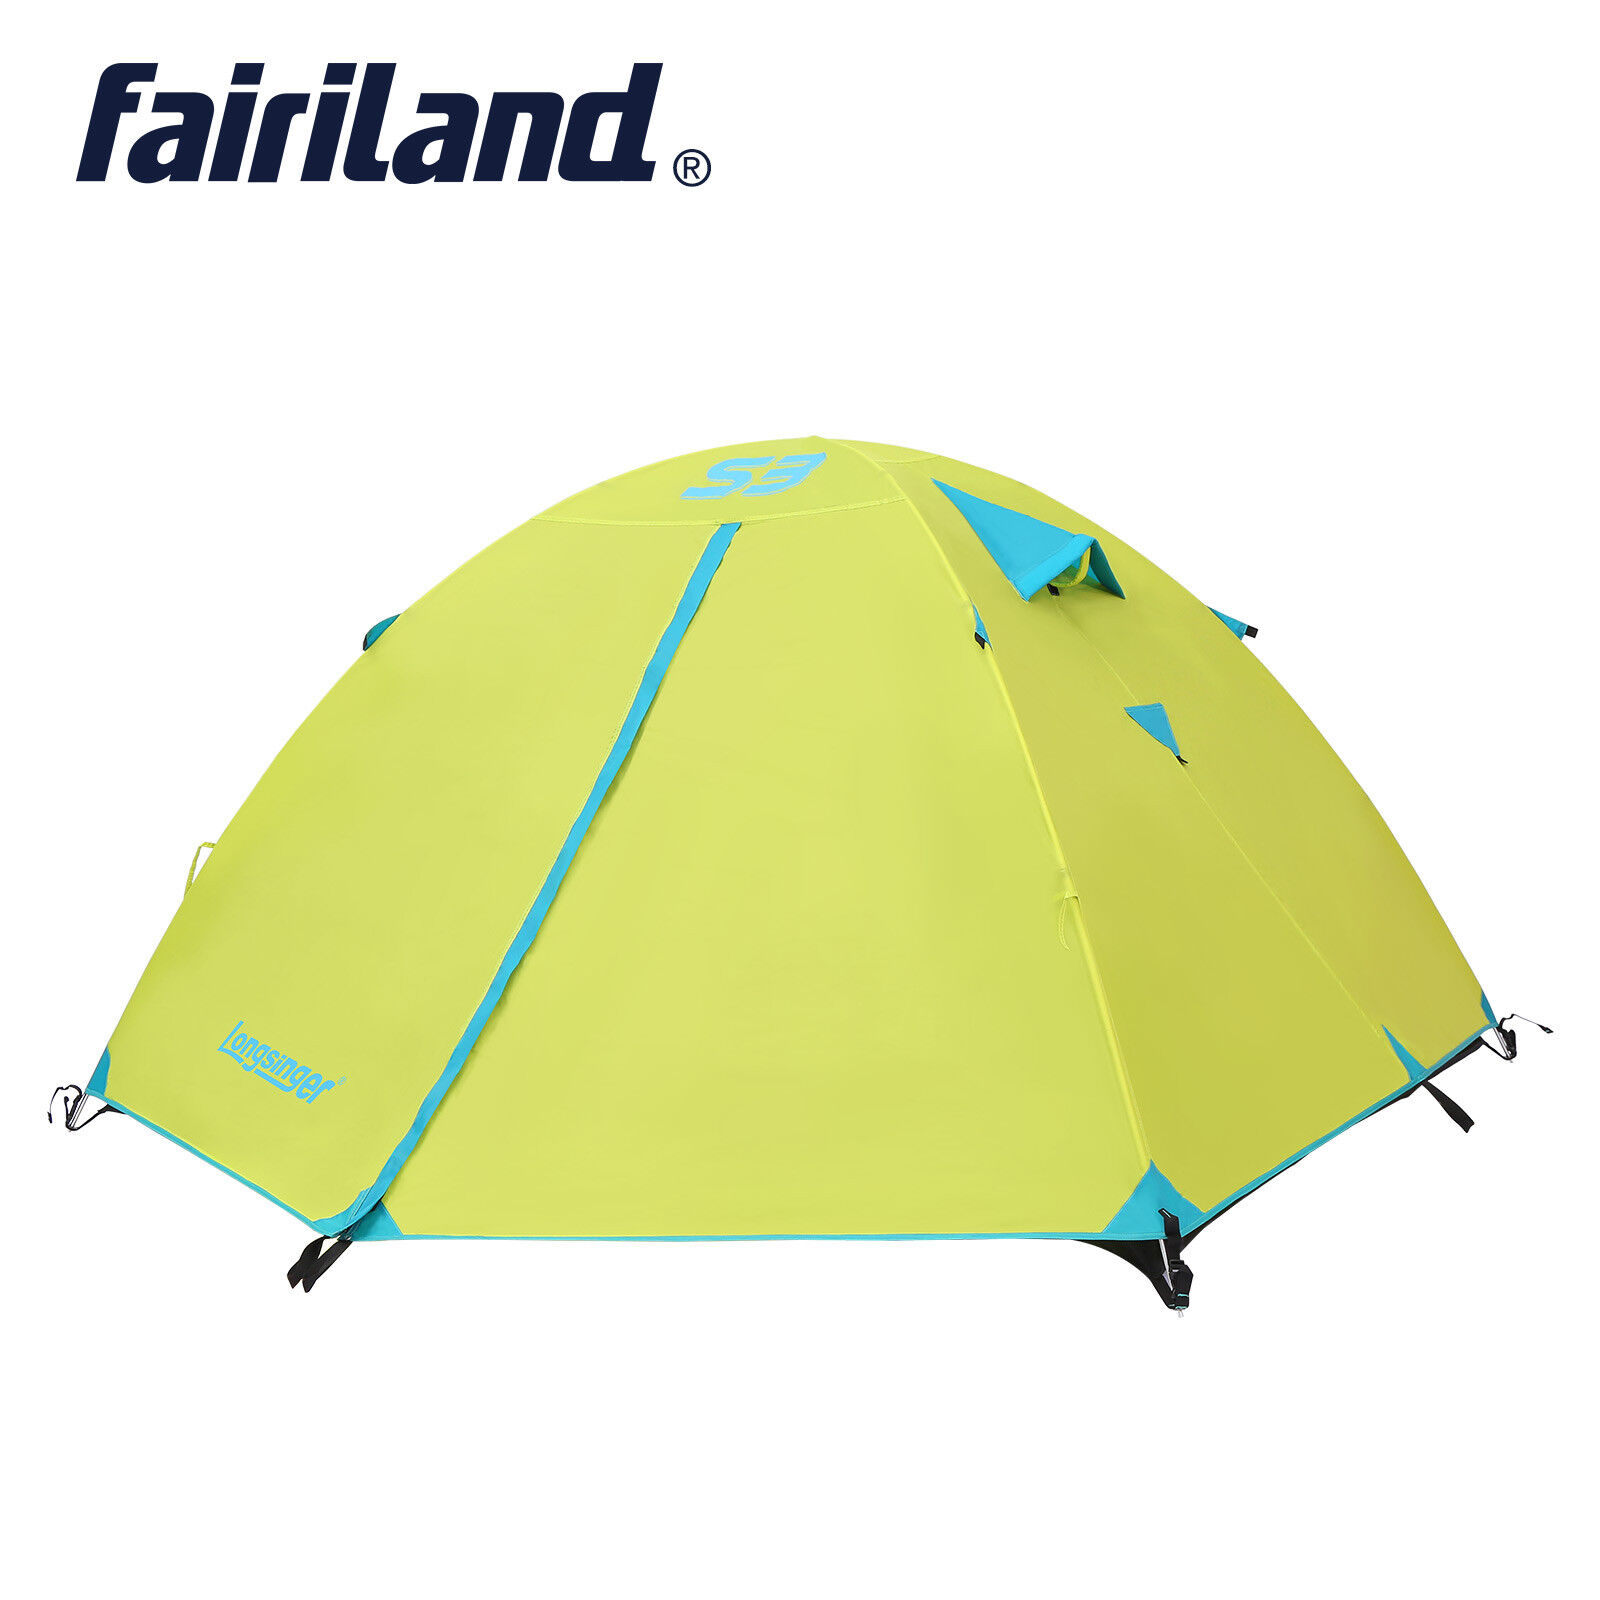 3 season 3 person double layer hiking traveling camping tent 10.17.14.2ft